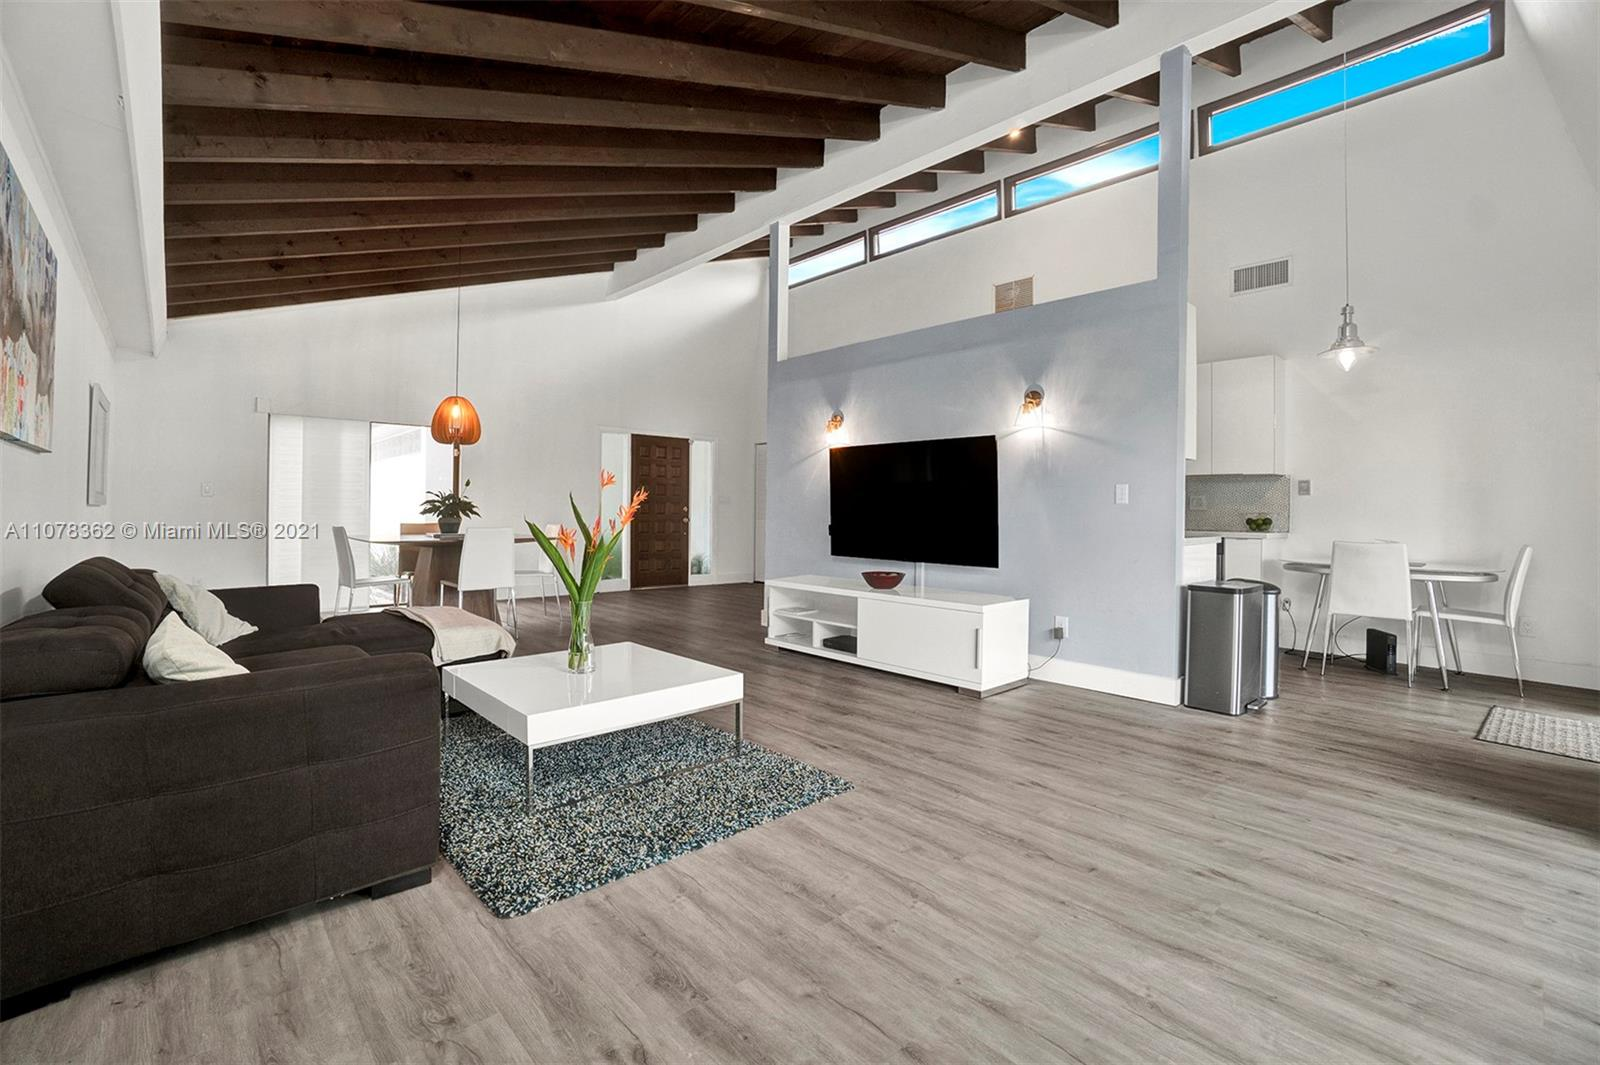 ONE-STORY VILLA COMPLETELY REMODELED WITH OPEN CONCEPT. VAULTED CEILING IN THE LIVING AREA WITH EXPOSED WOOD BEAMS GIVING A BIT OF CHARM. LOTS OF NATURAL  COMING THRU   WITH A BEAUTIFUL VIEW OF THE GOLF COURSE.  THERE IS A INSIDE LAUNDRY ROOM. 2 CAR GARAGE.